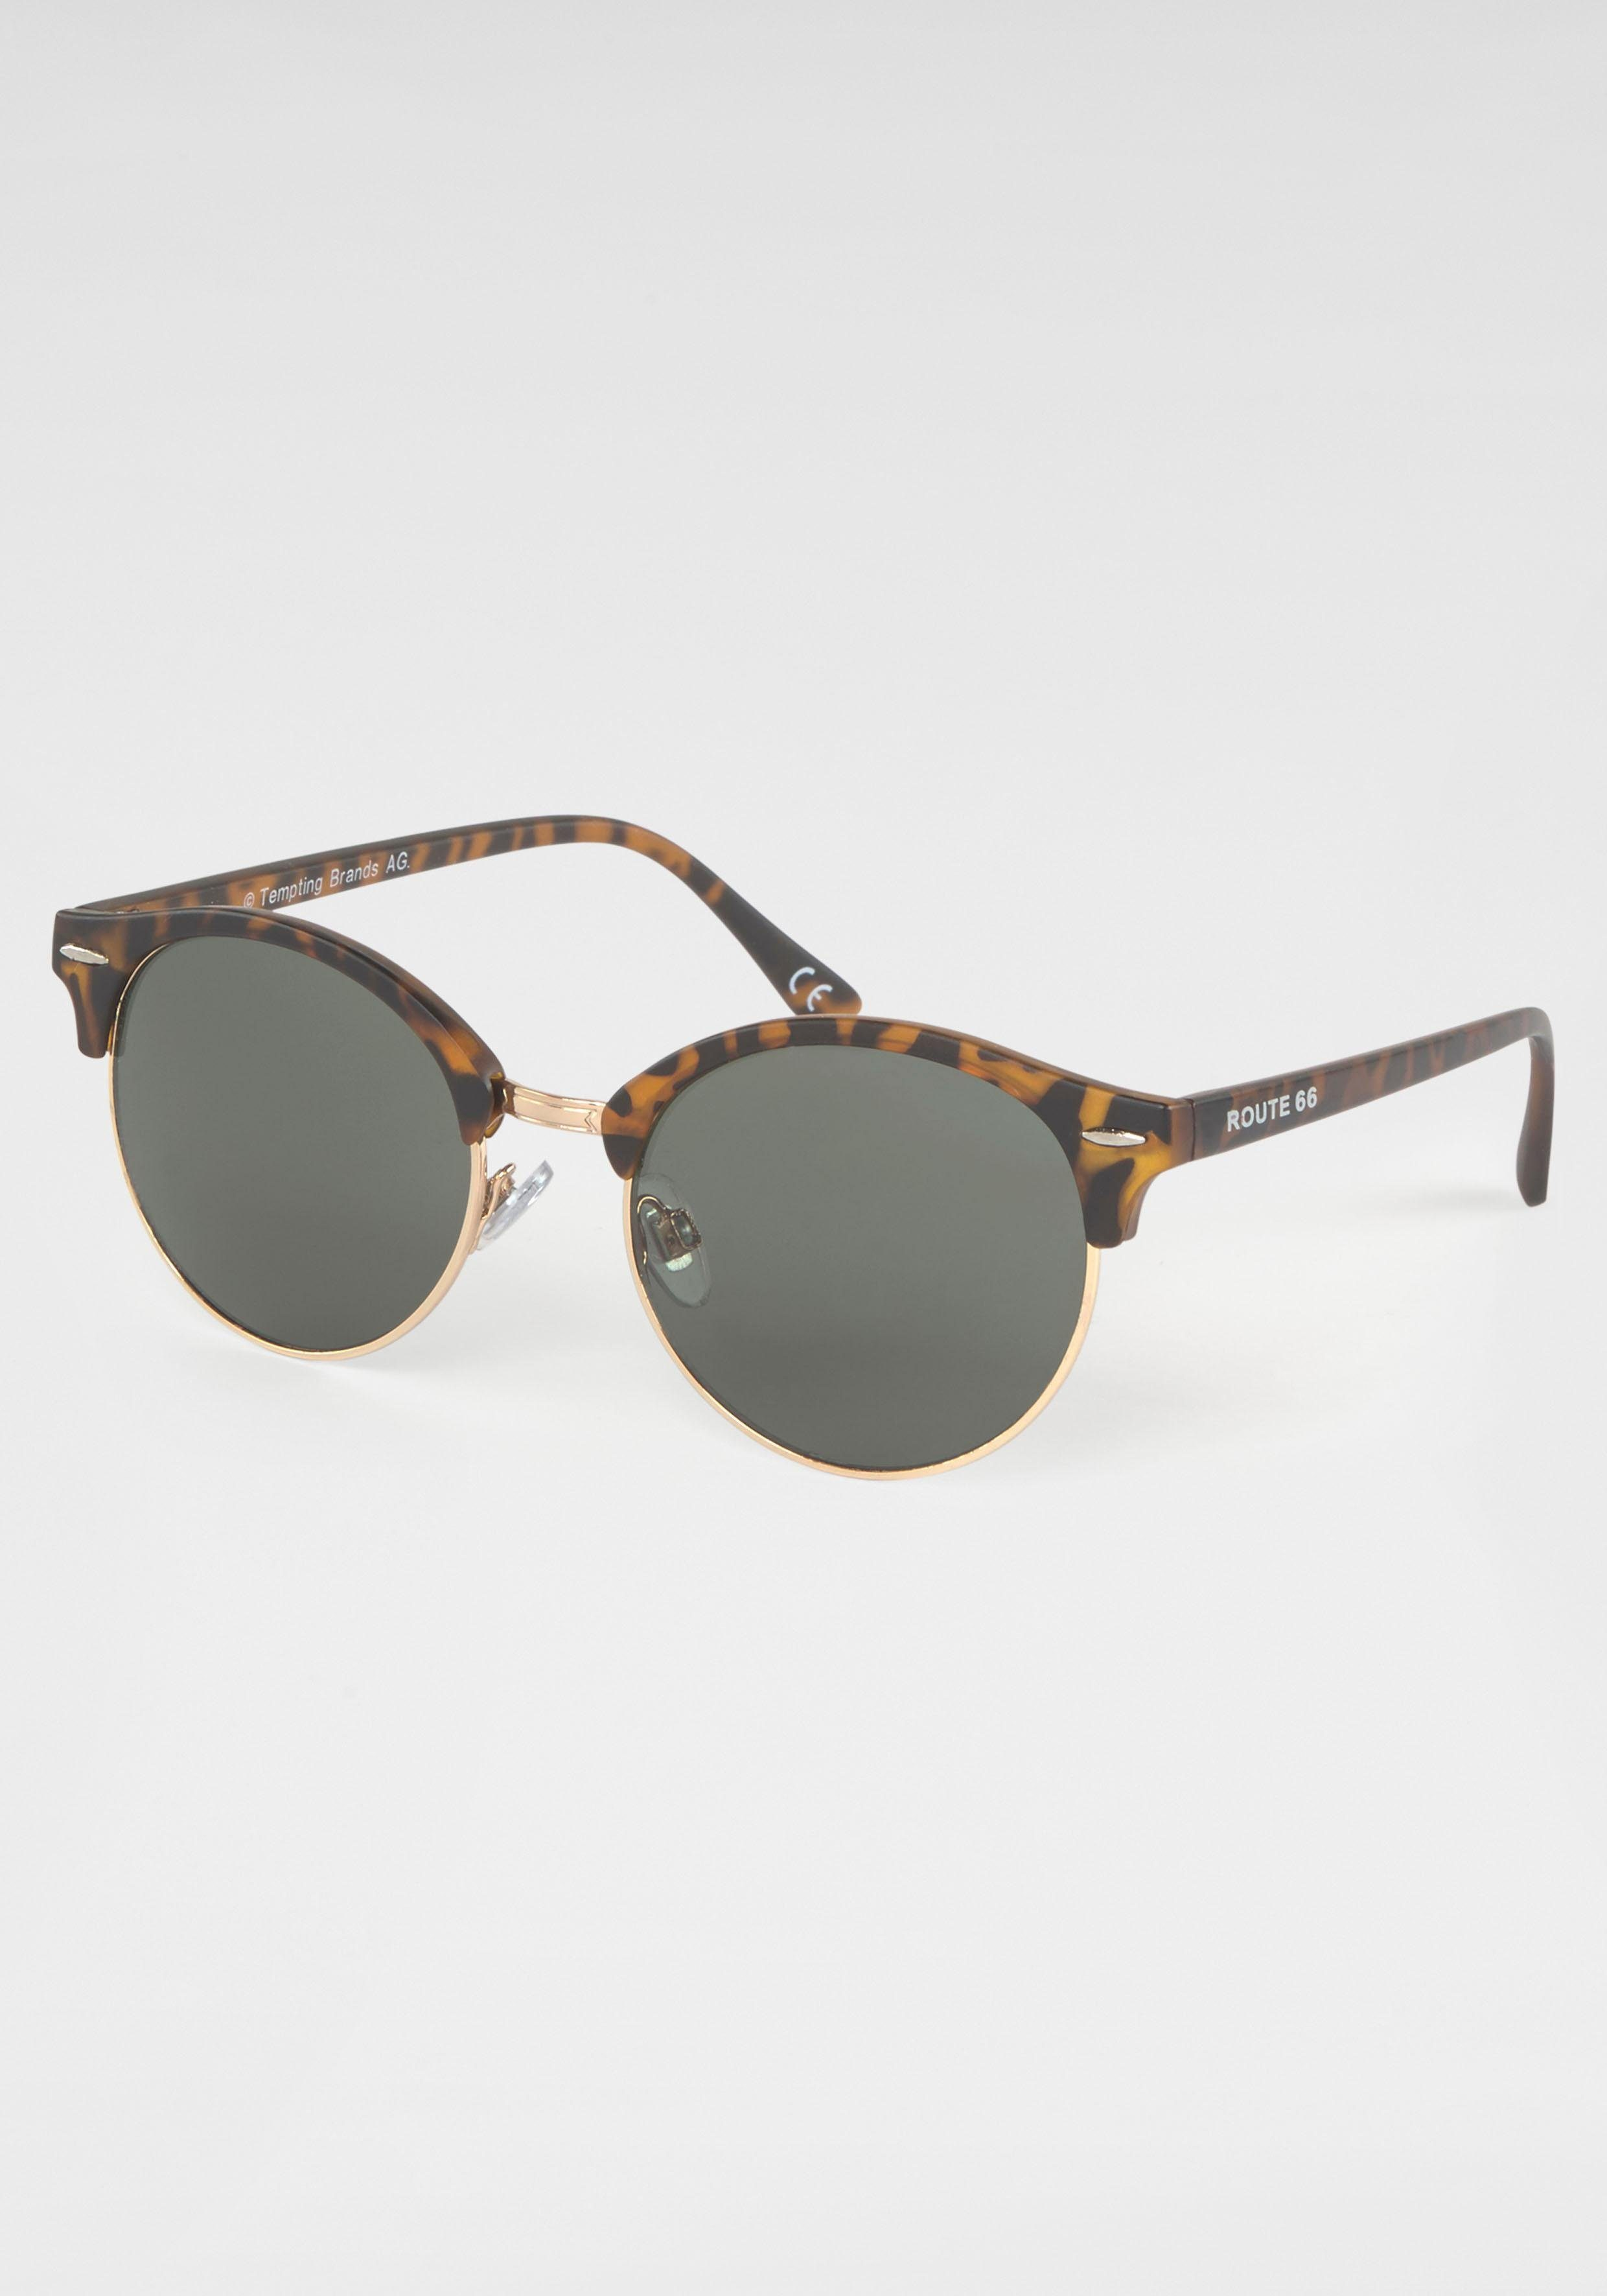 ROUTE 66 Feel the Freedom Eyewear Retrosonnenbrille Clubmaster Style, Damen Sonnenbrille, Animal Look